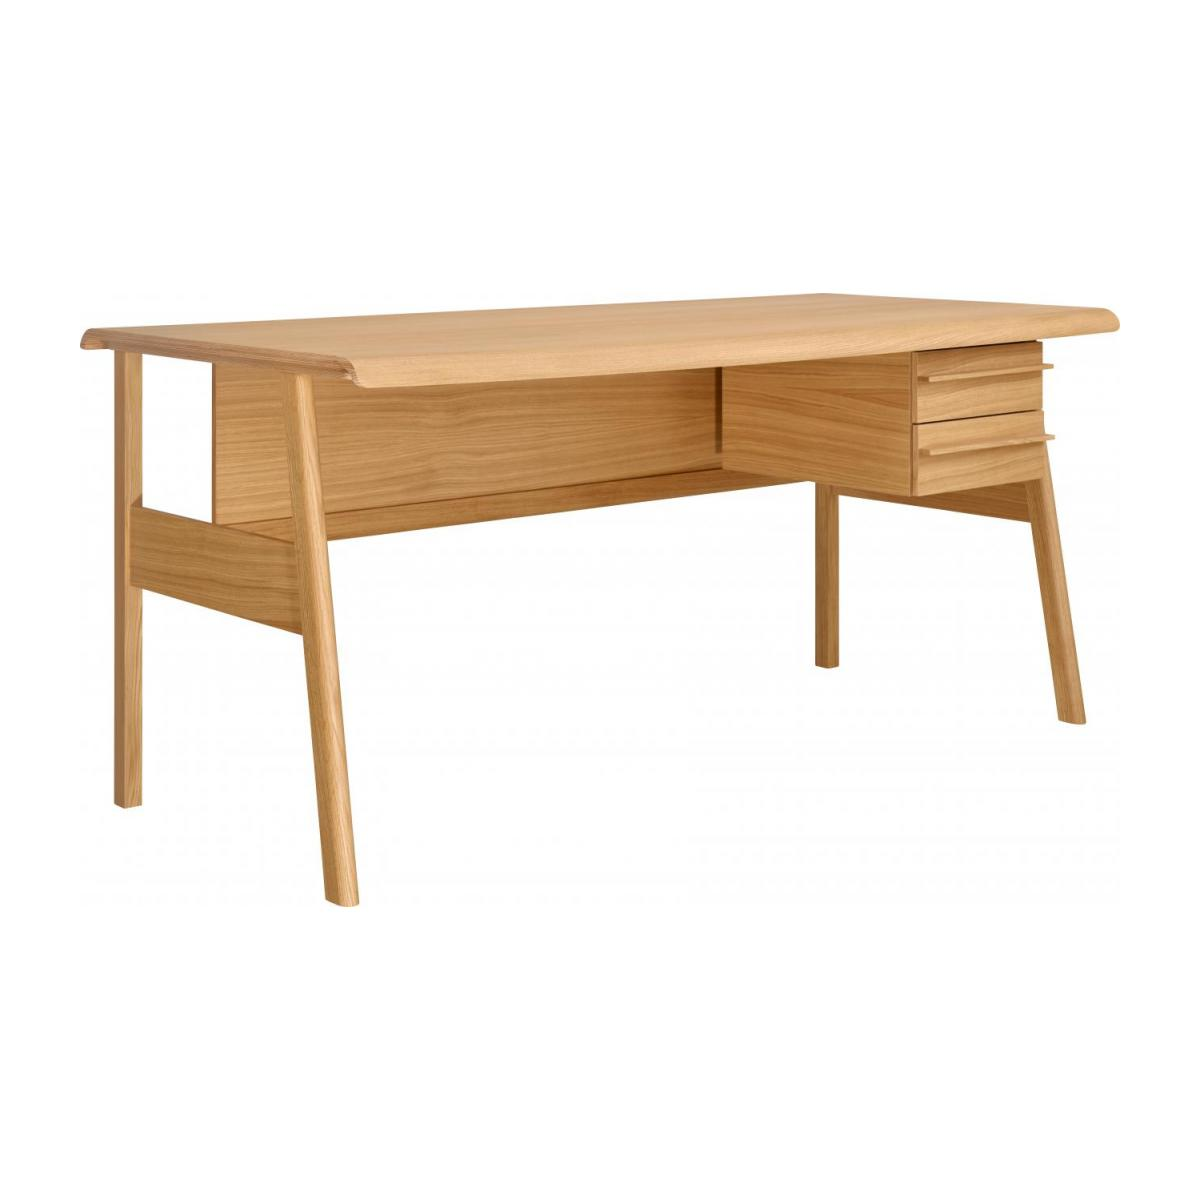 Big oak desk - Design by Joachim Jirou Najou n°1